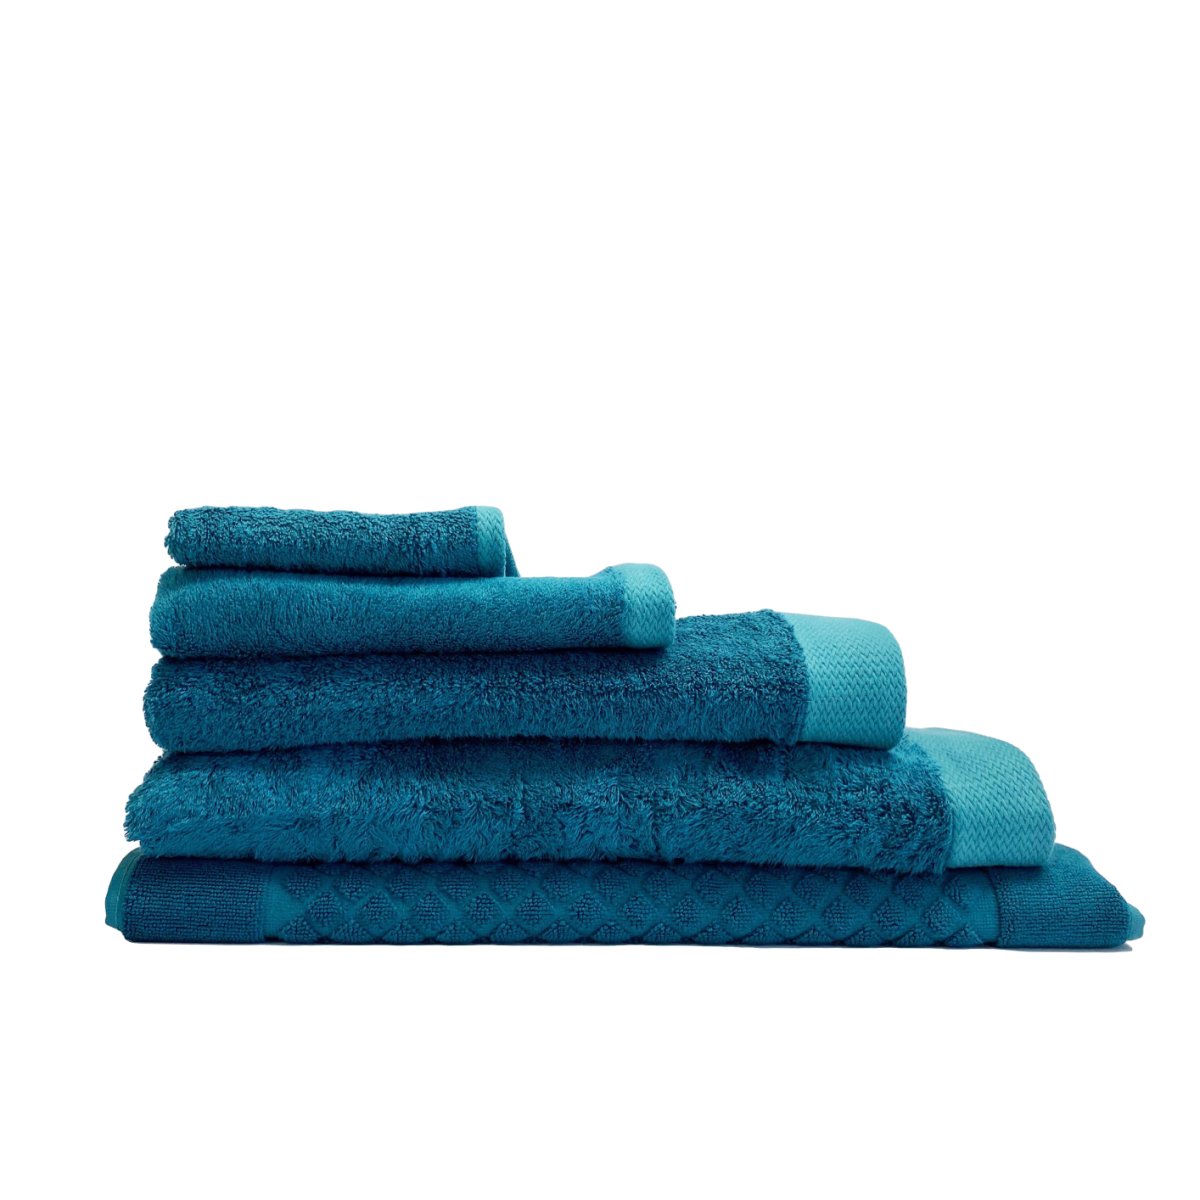 Bamboo Towels - Teal